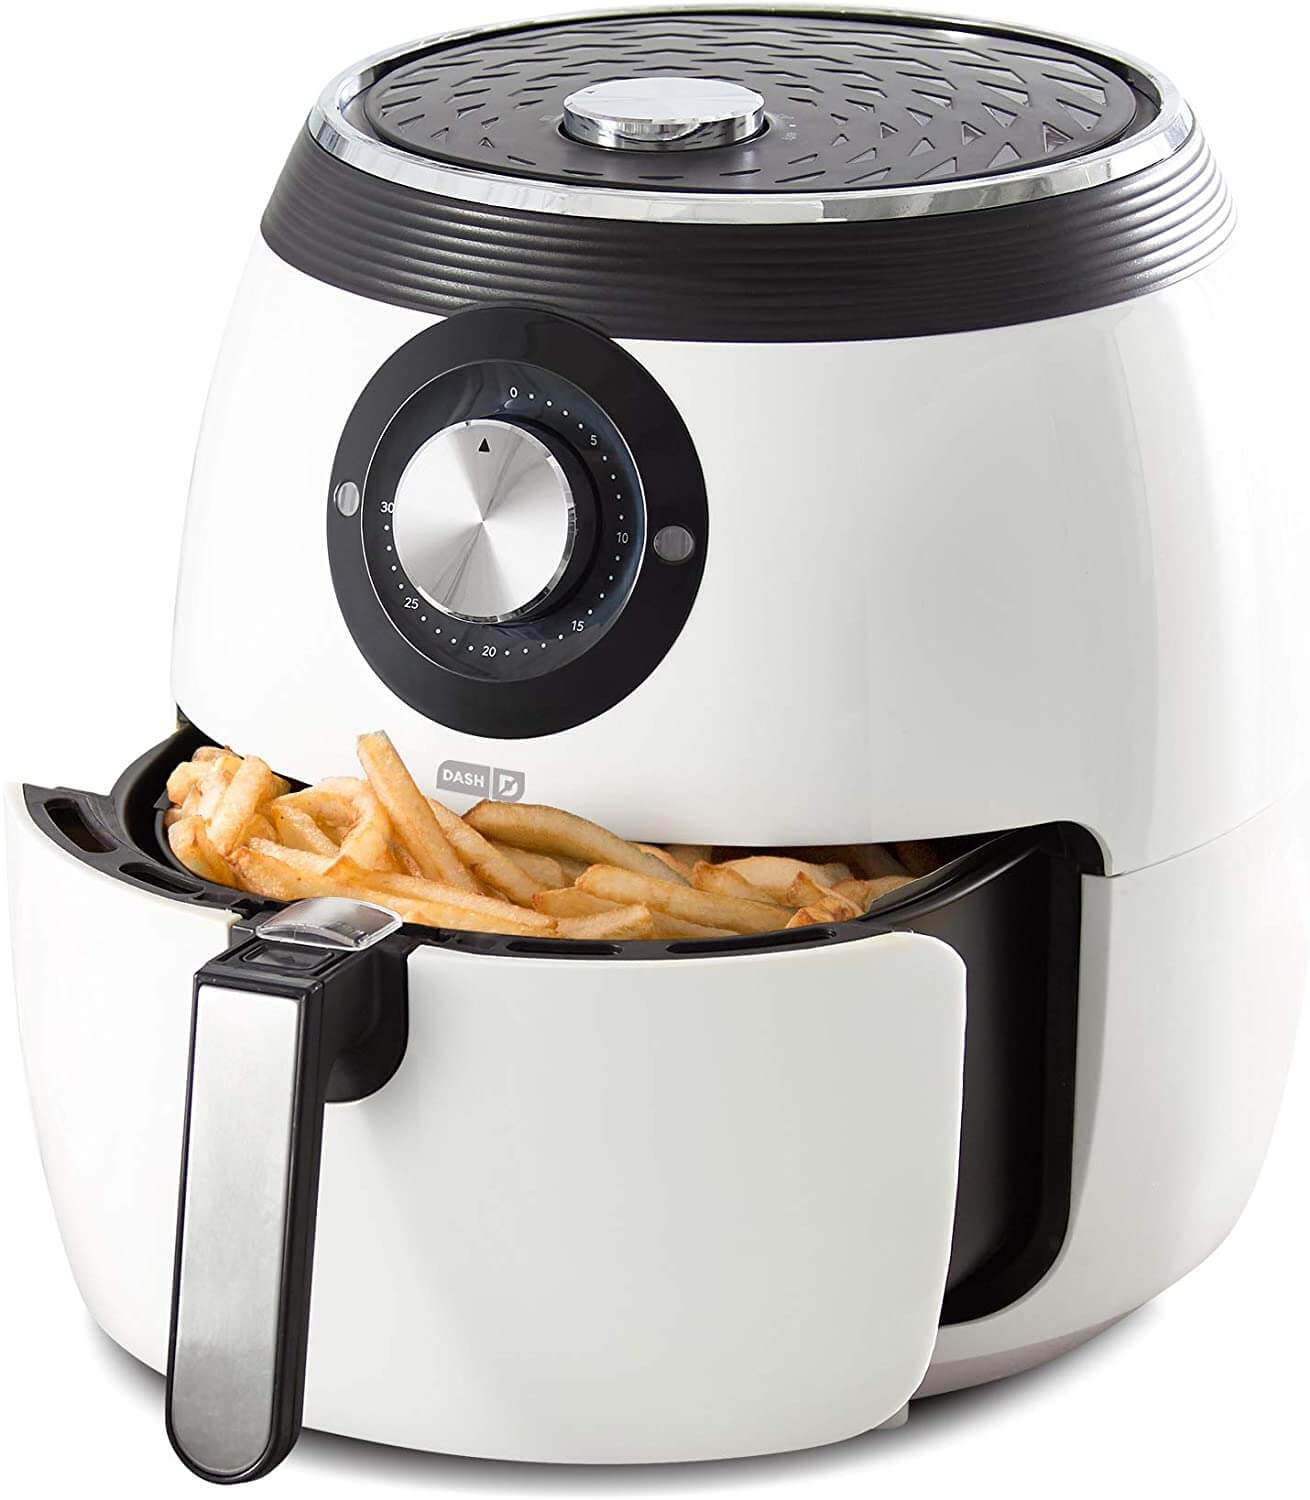 Dash DFAF455GBWH01 Deluxe Electric Air Fryer + Oven Cooker with Temperature Control, Non-stick Fry Basket, Recipe Guide + Auto Shut Off Feature, 1700-Watt, 6 Quart, 6 qt, White